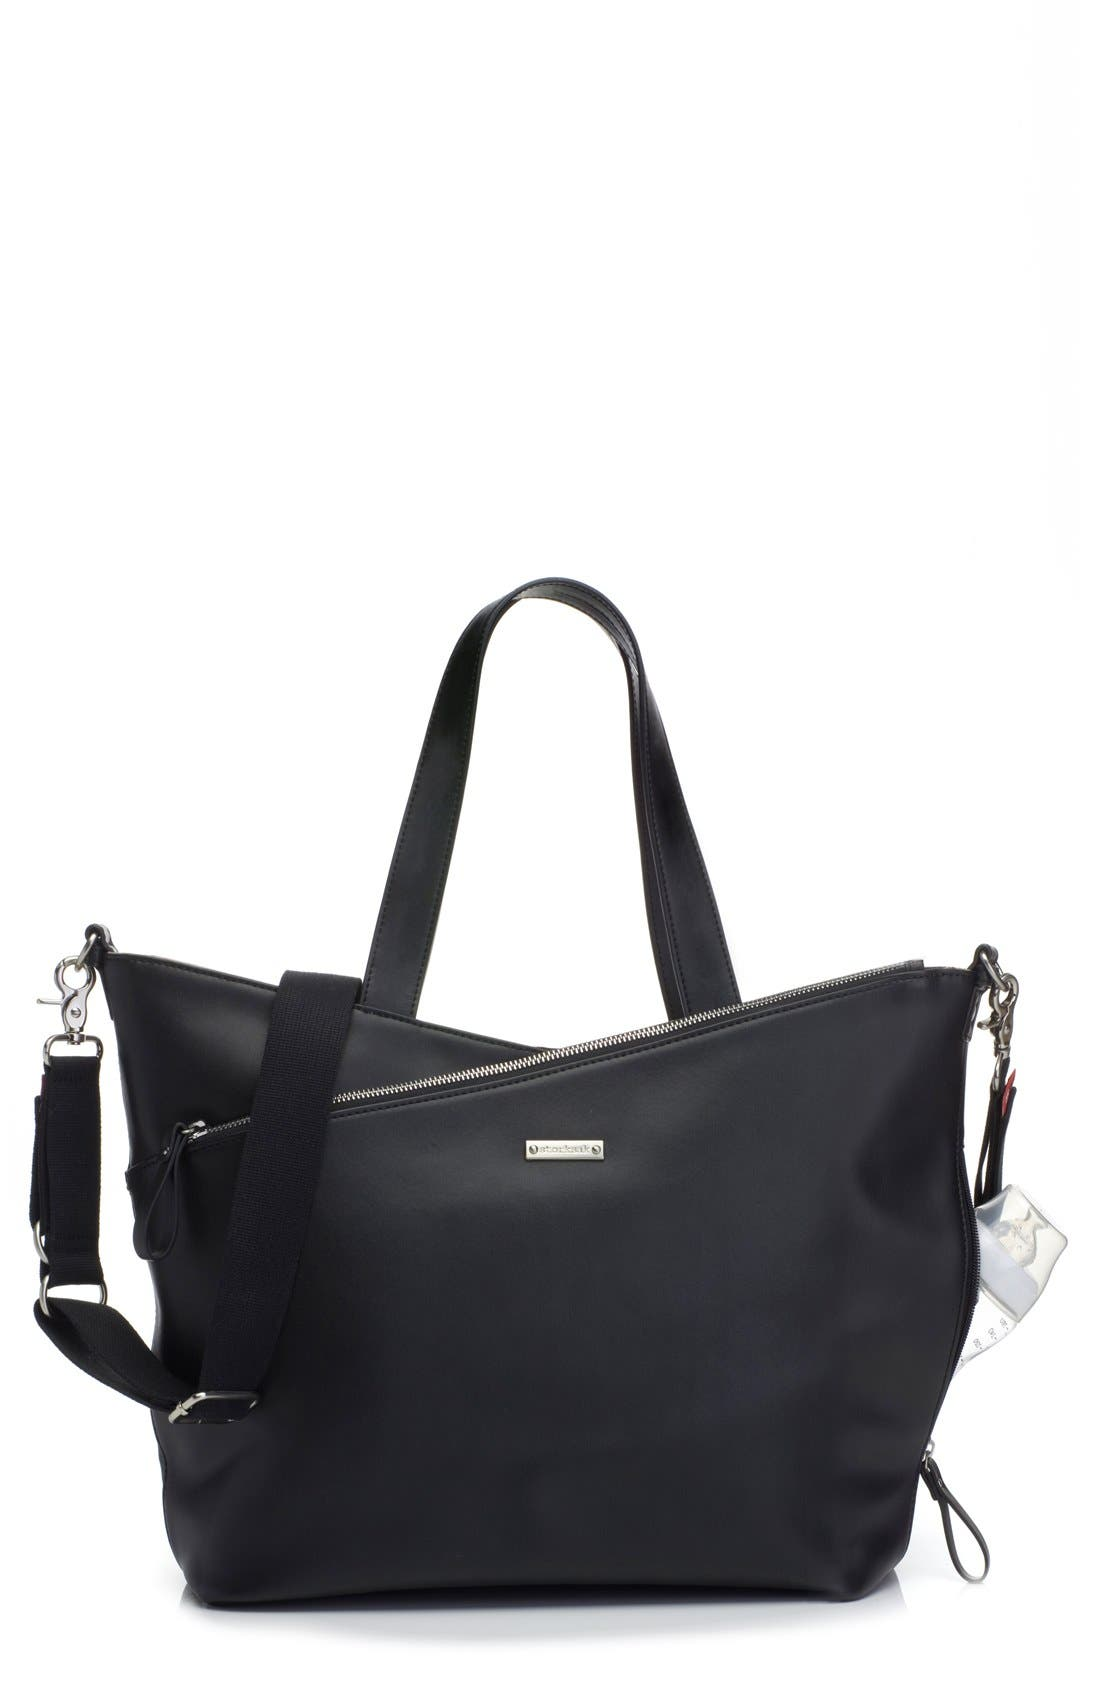 Alternate Image 1 Selected - Storksak 'Lucinda' Diaper Bag Leather Tote